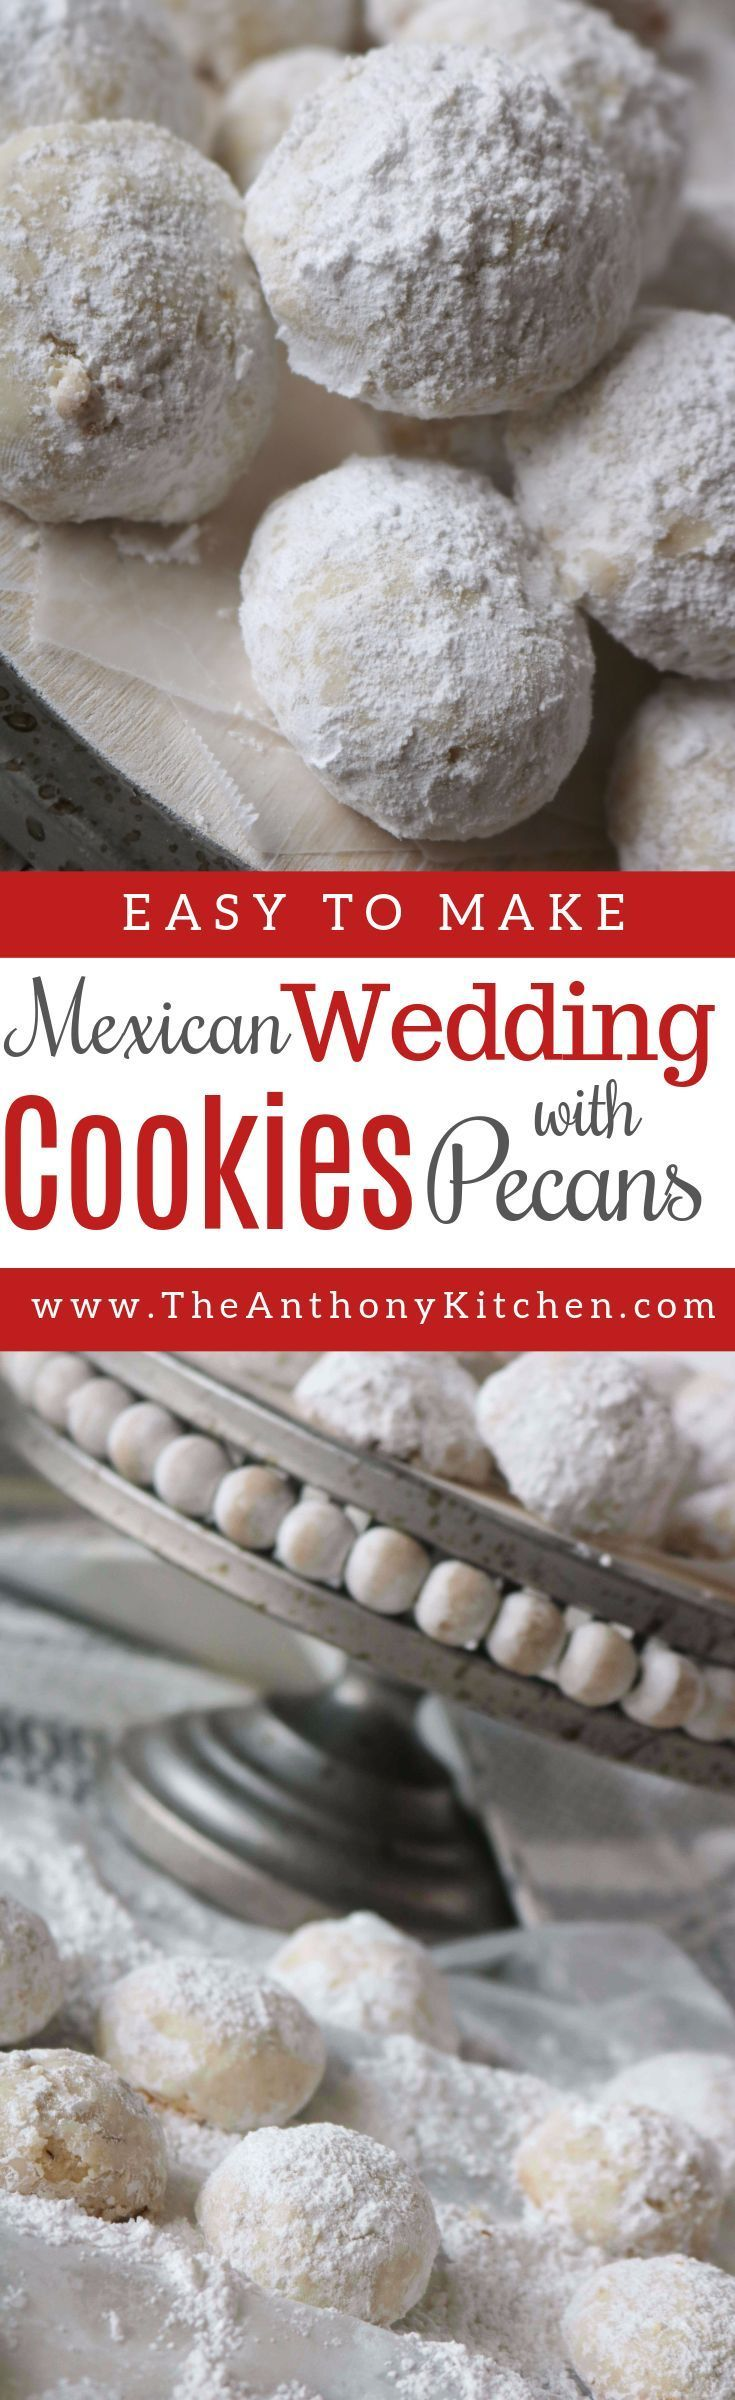 Mexican Wedding Cookies Recipe (With images) Mexican